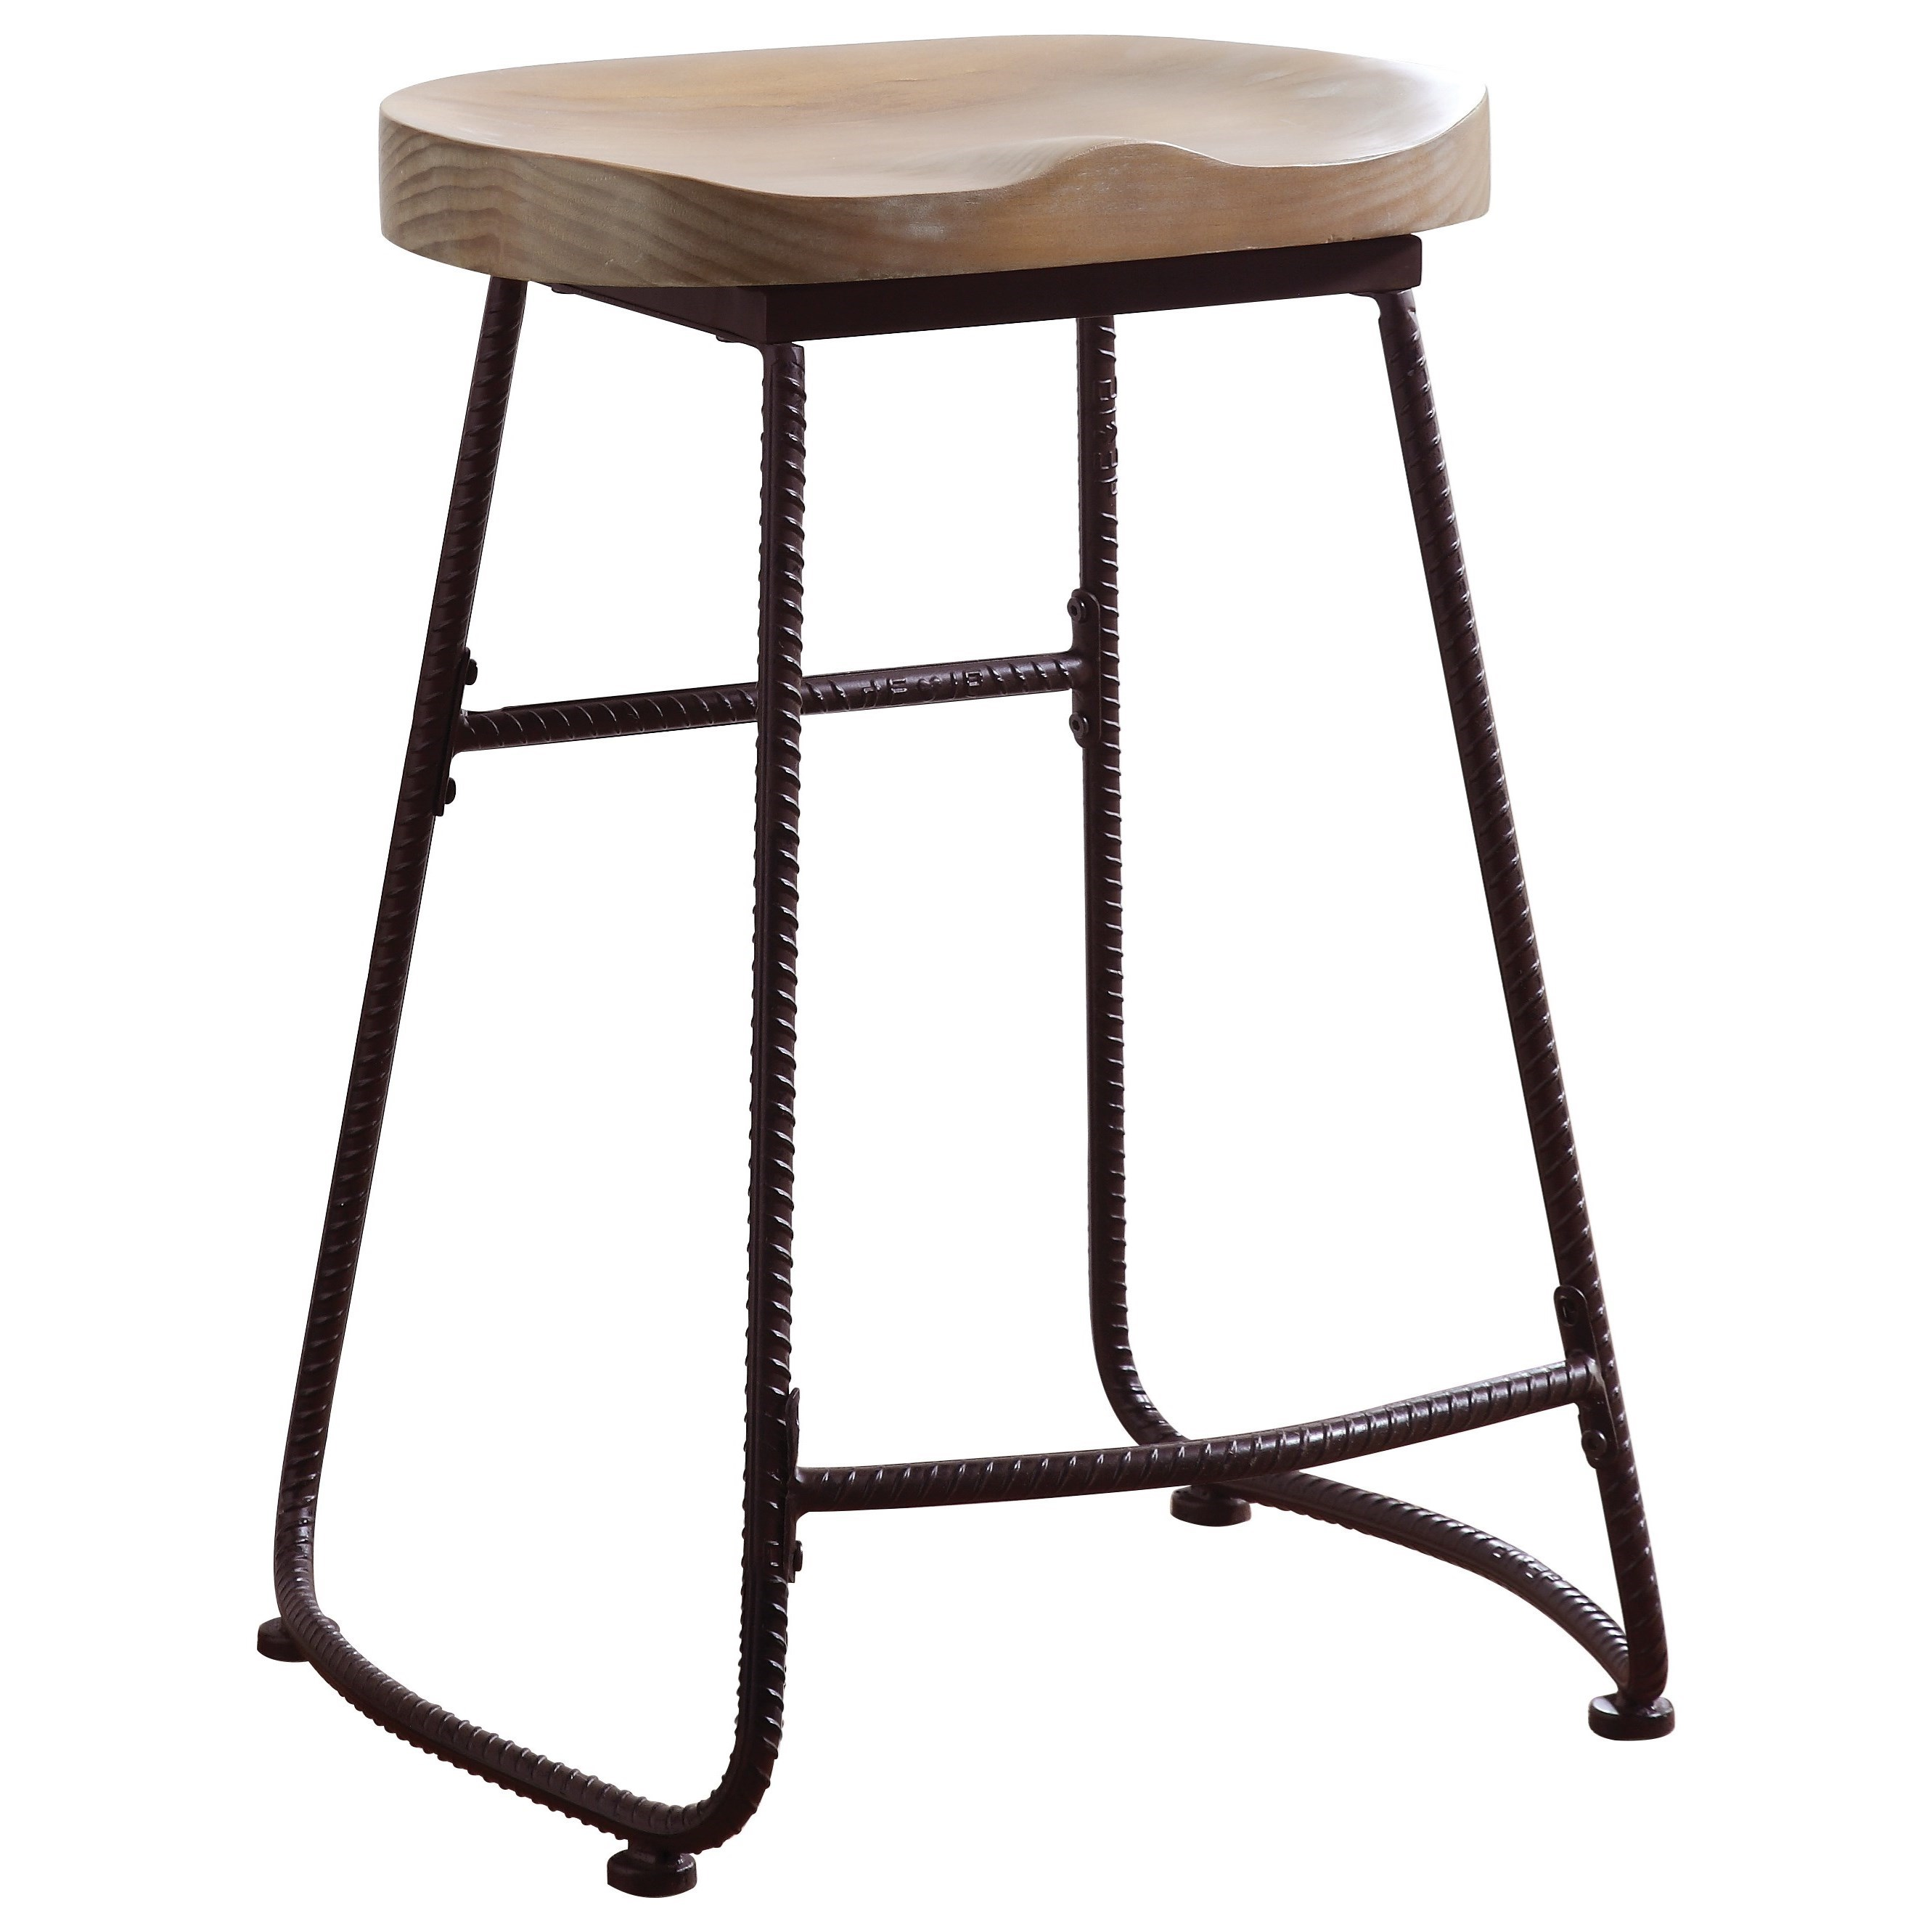 Rustic Modern Counter Stools Coaster Dining Chairs And Bar Stools 101085 Rustic Counter